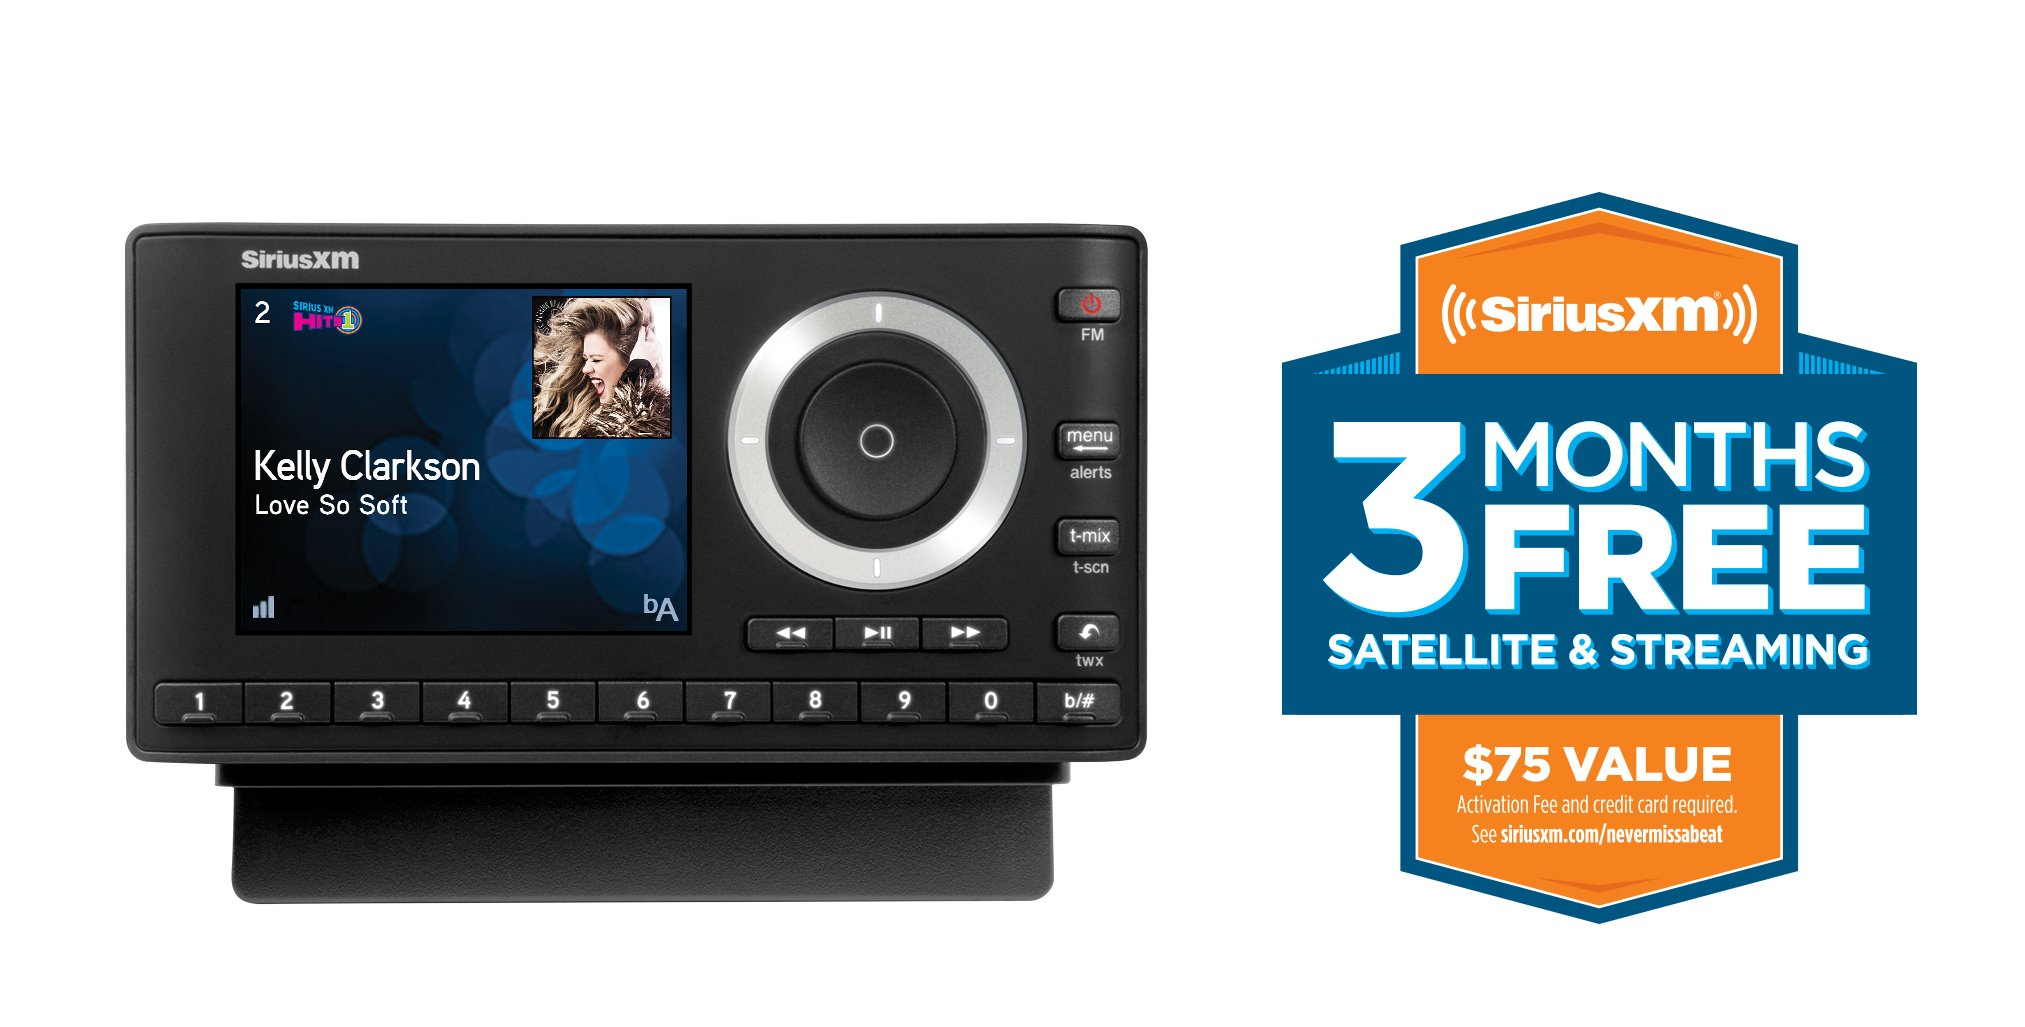 SiriusXM SXPL1V1 Onyx Plus Satellite Radio with Vehicle Kit with Free 3 Months Satellite and Streaming Service by SiriusXM (Image #2)